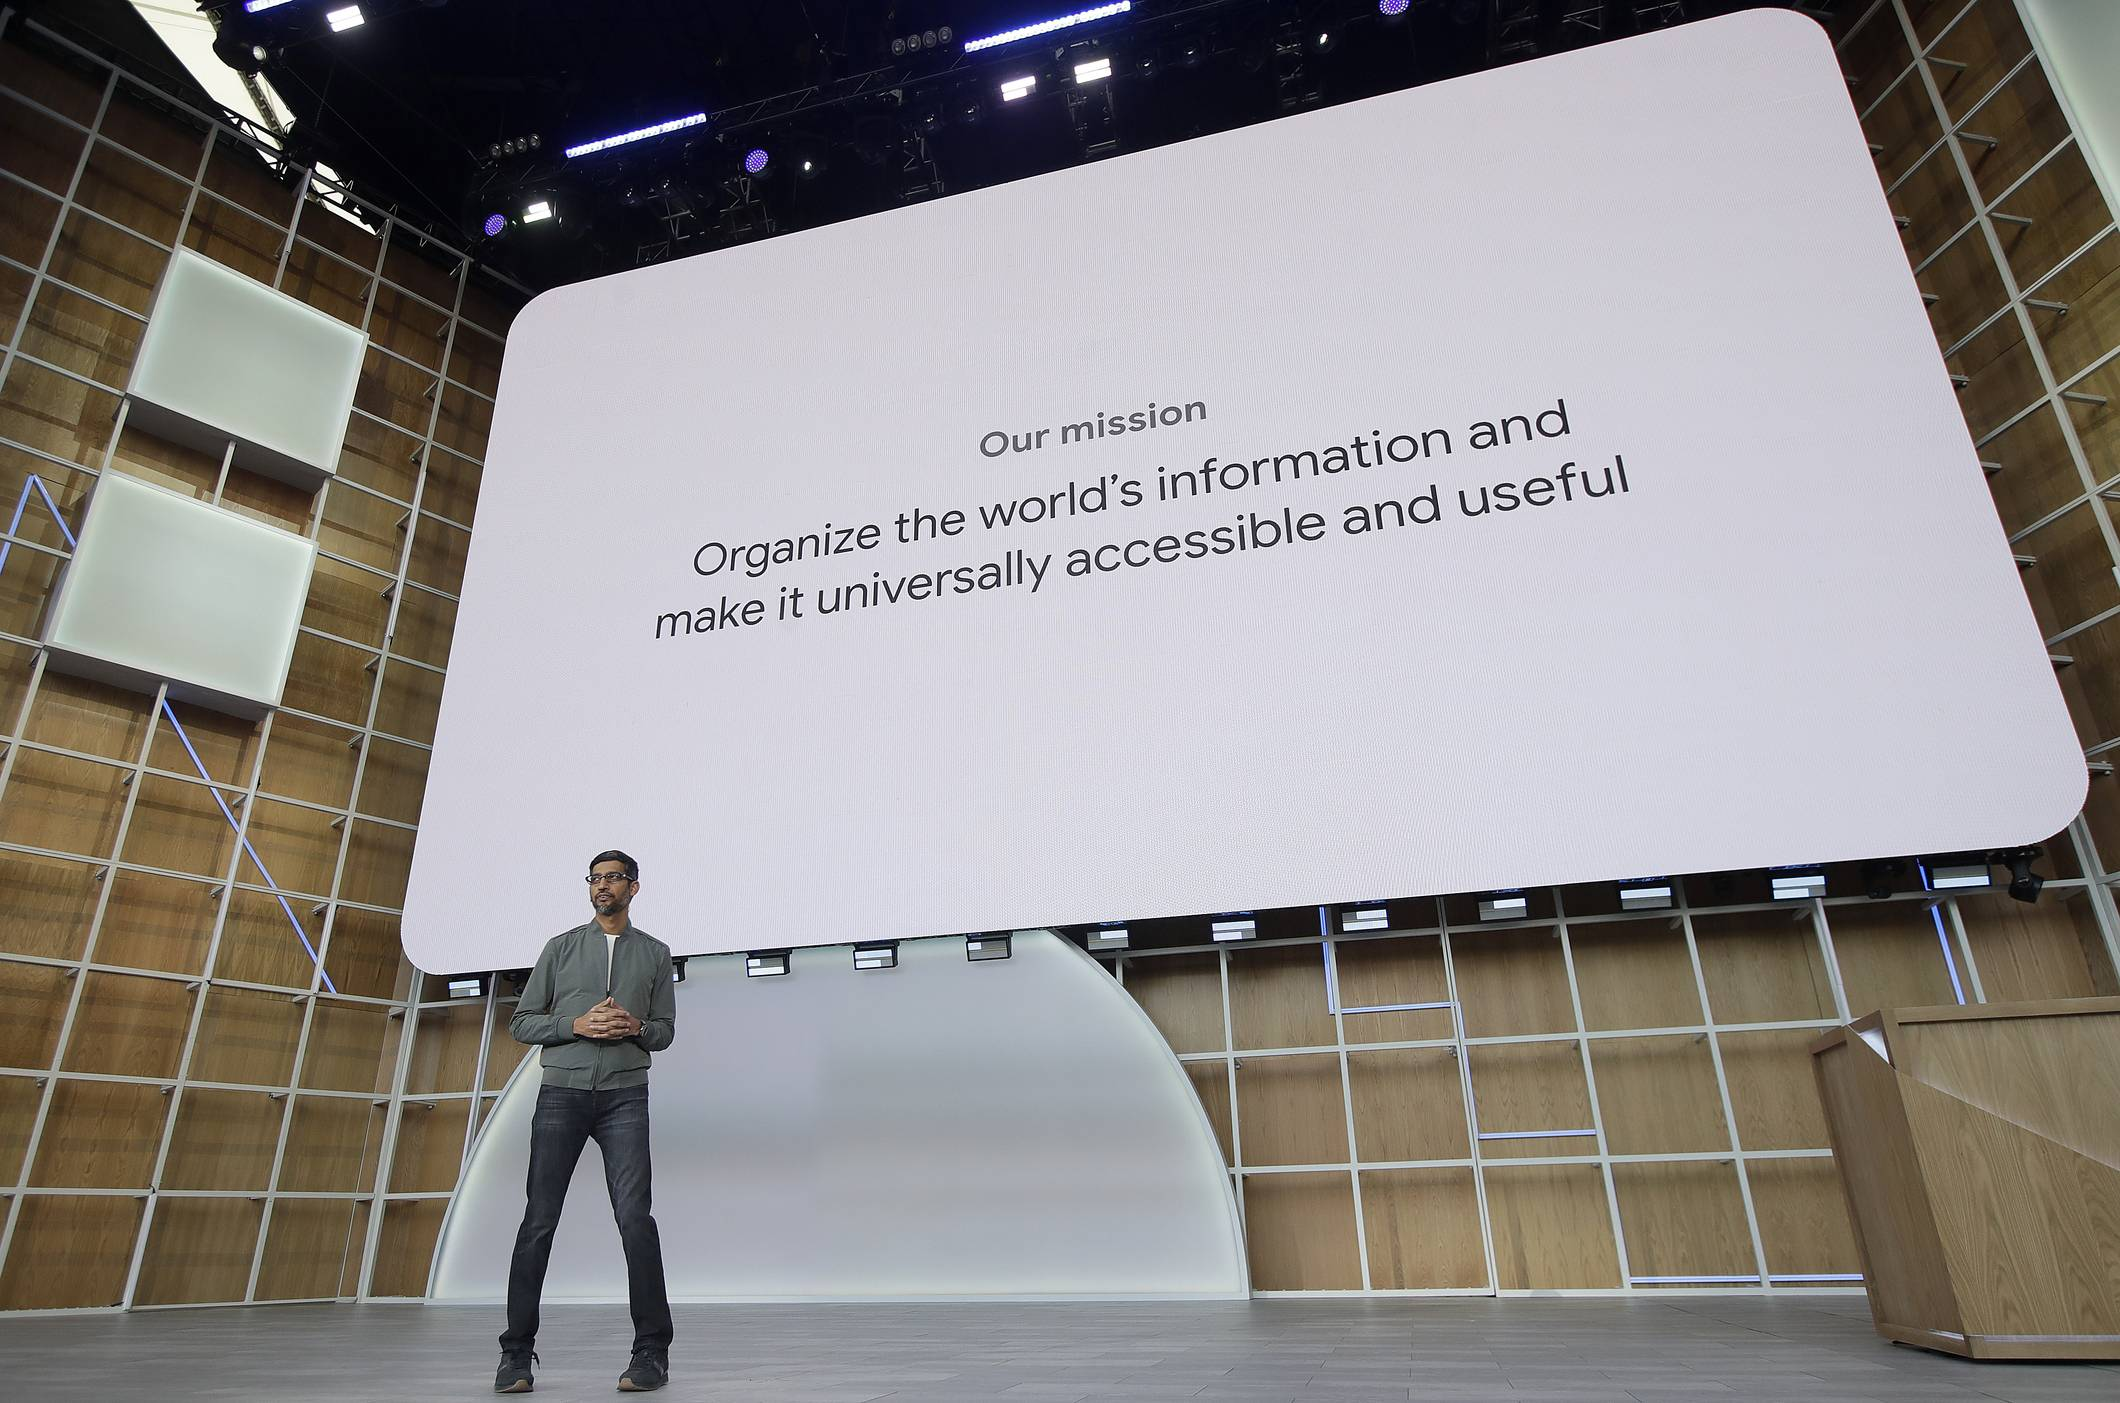 Google CEO Sundar Pichai speaks during the keynote address of the Google I/O conference in Mountain View, Calif., Tuesday, May 7, 2019.